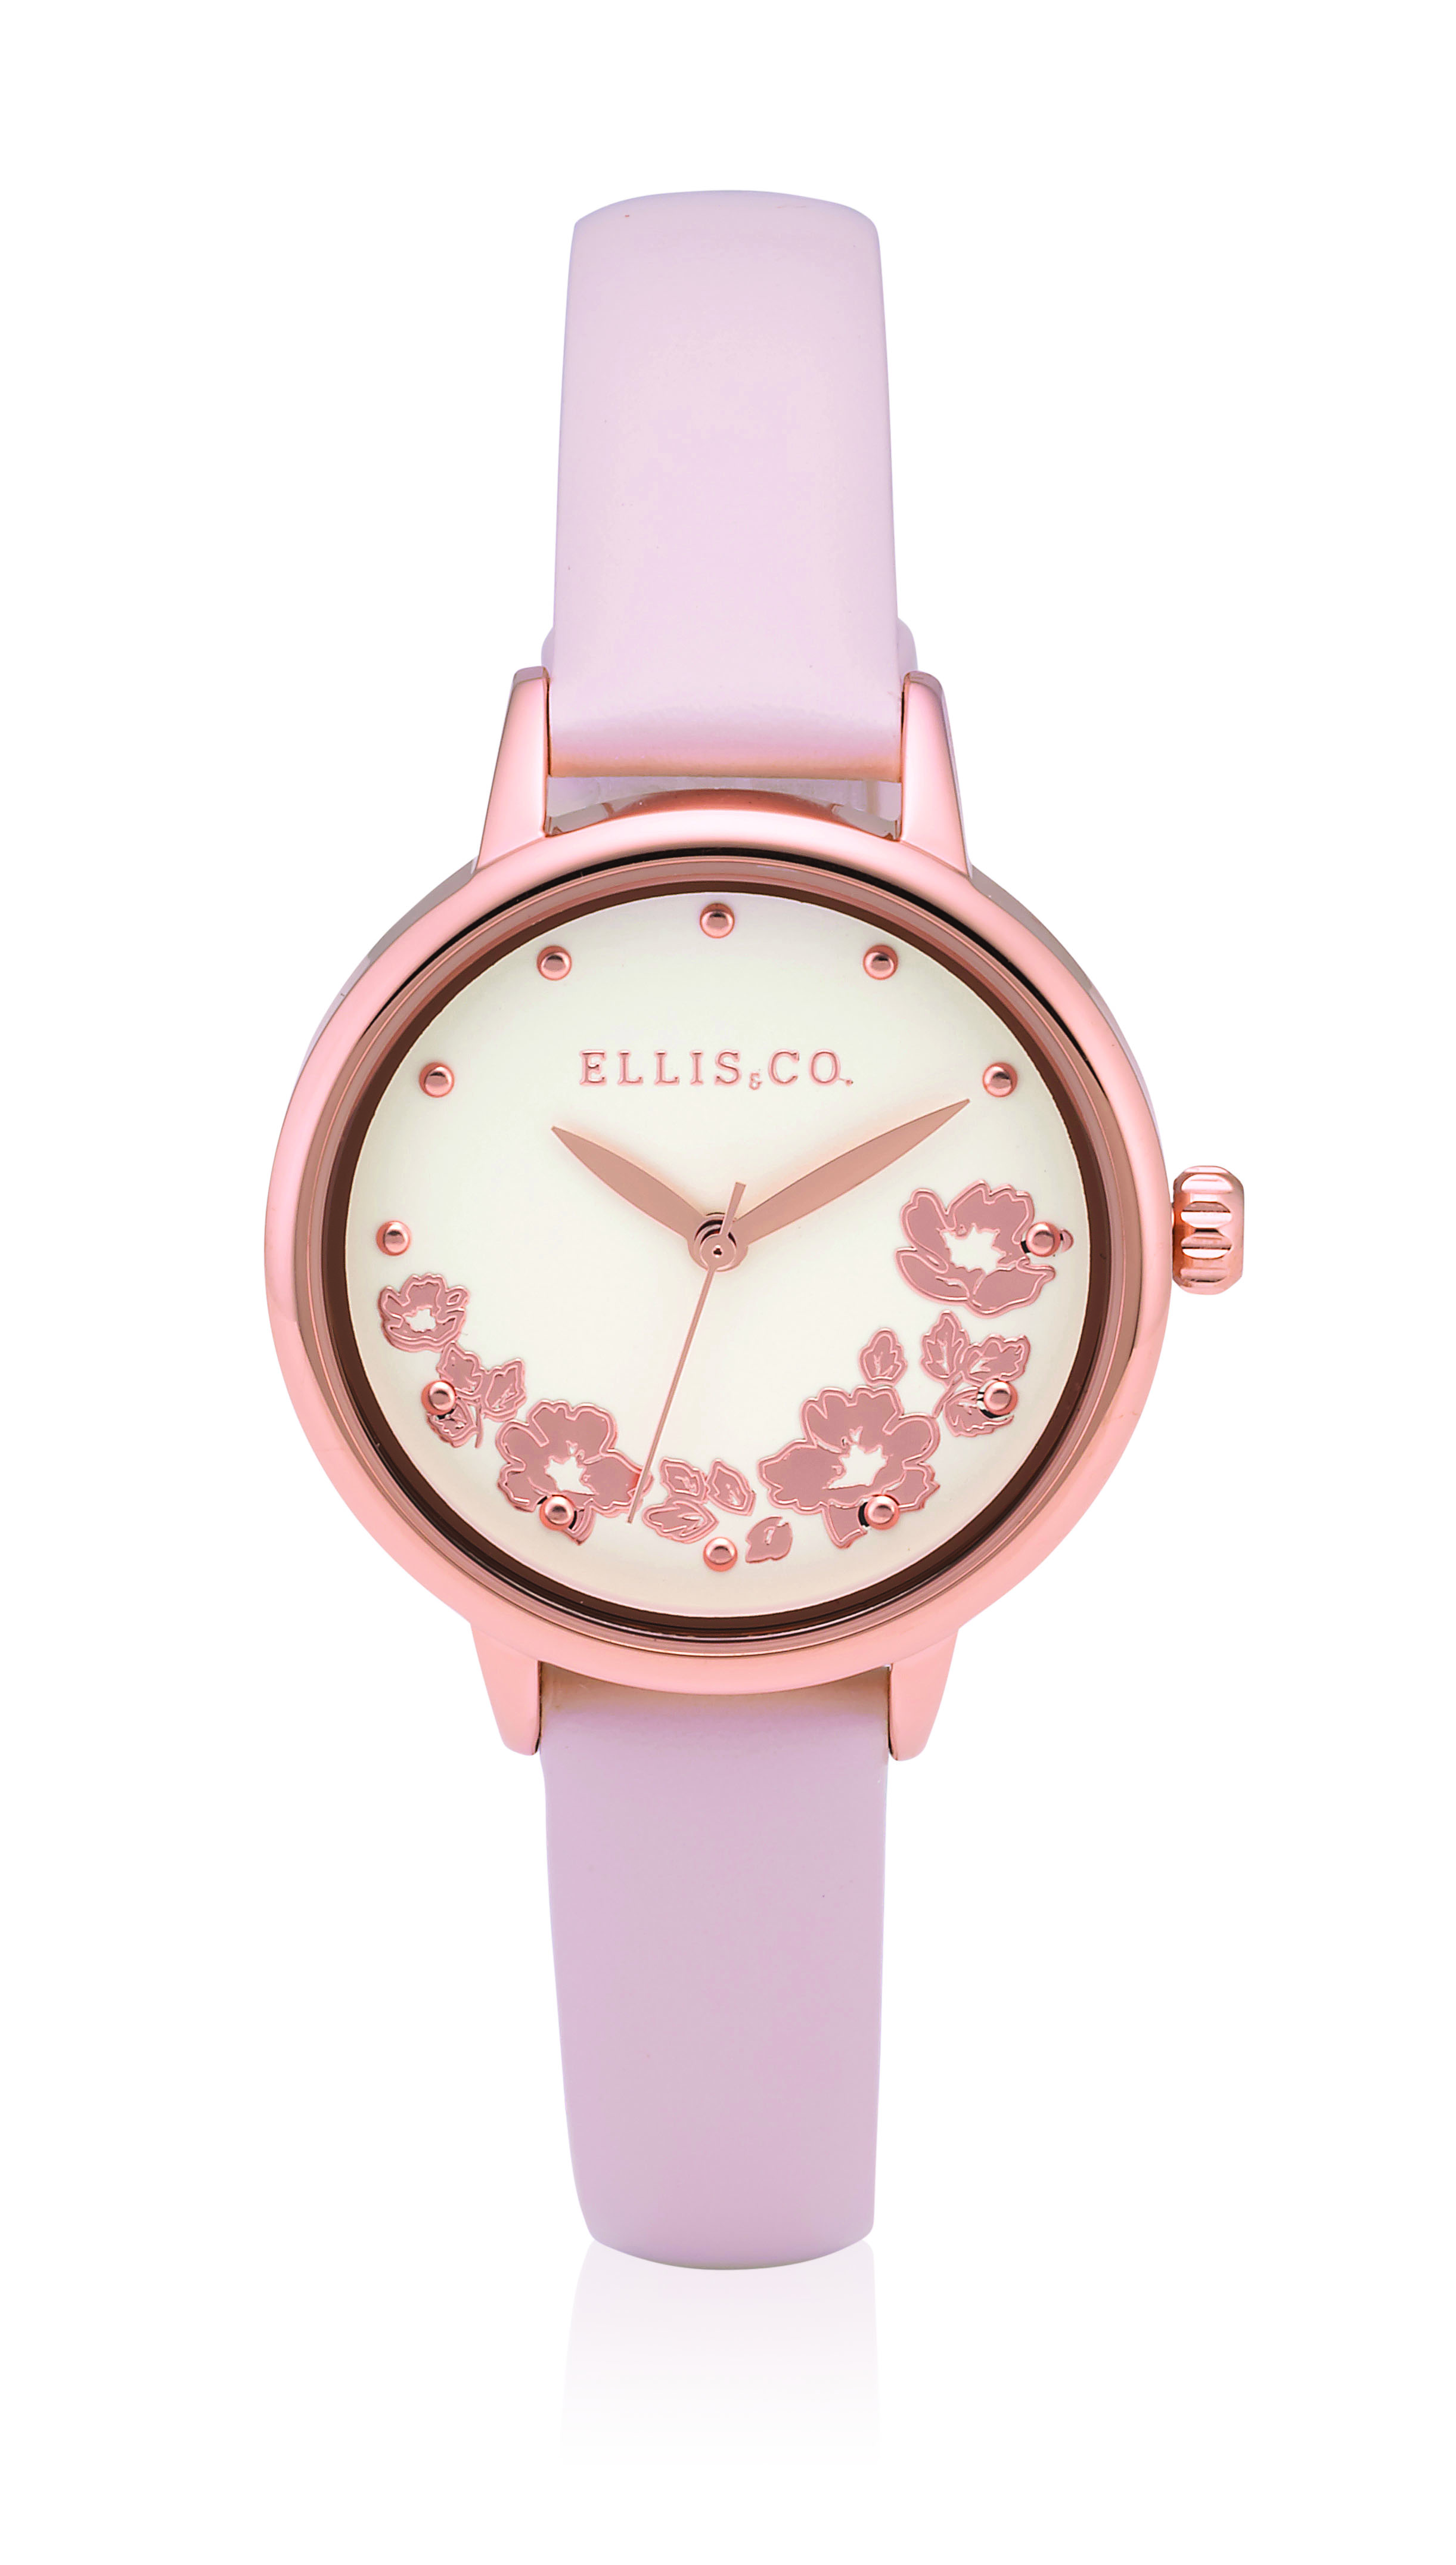 Ellis & Co Pink Leather Womens Watch